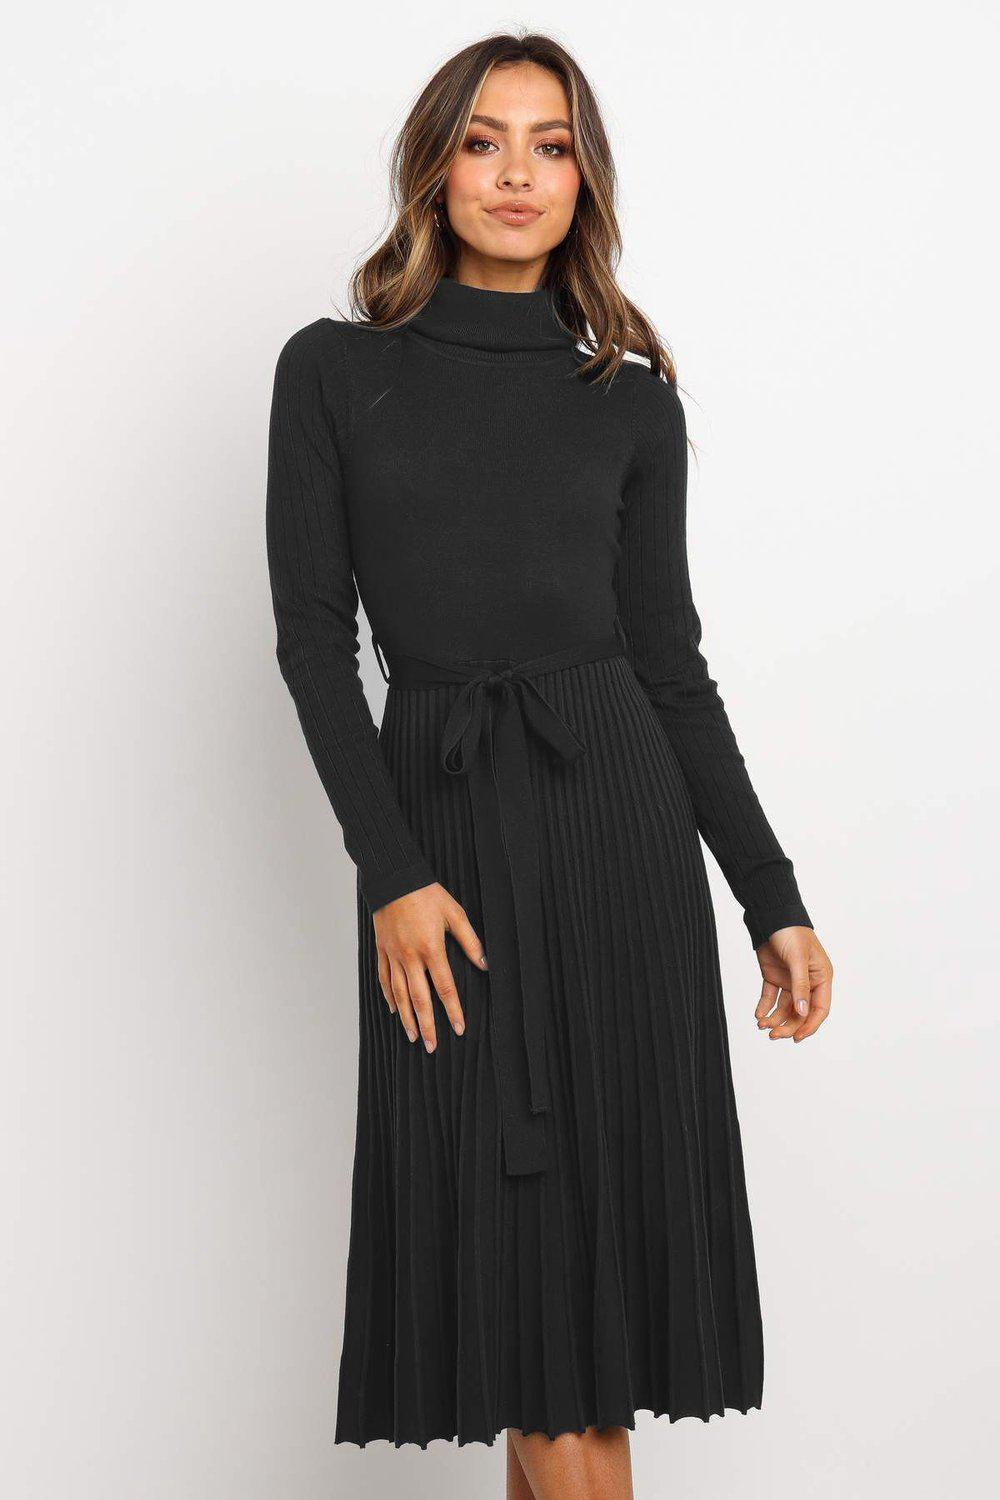 Radiez Classy High Neck Long Sleeve Pleated Midi Dress